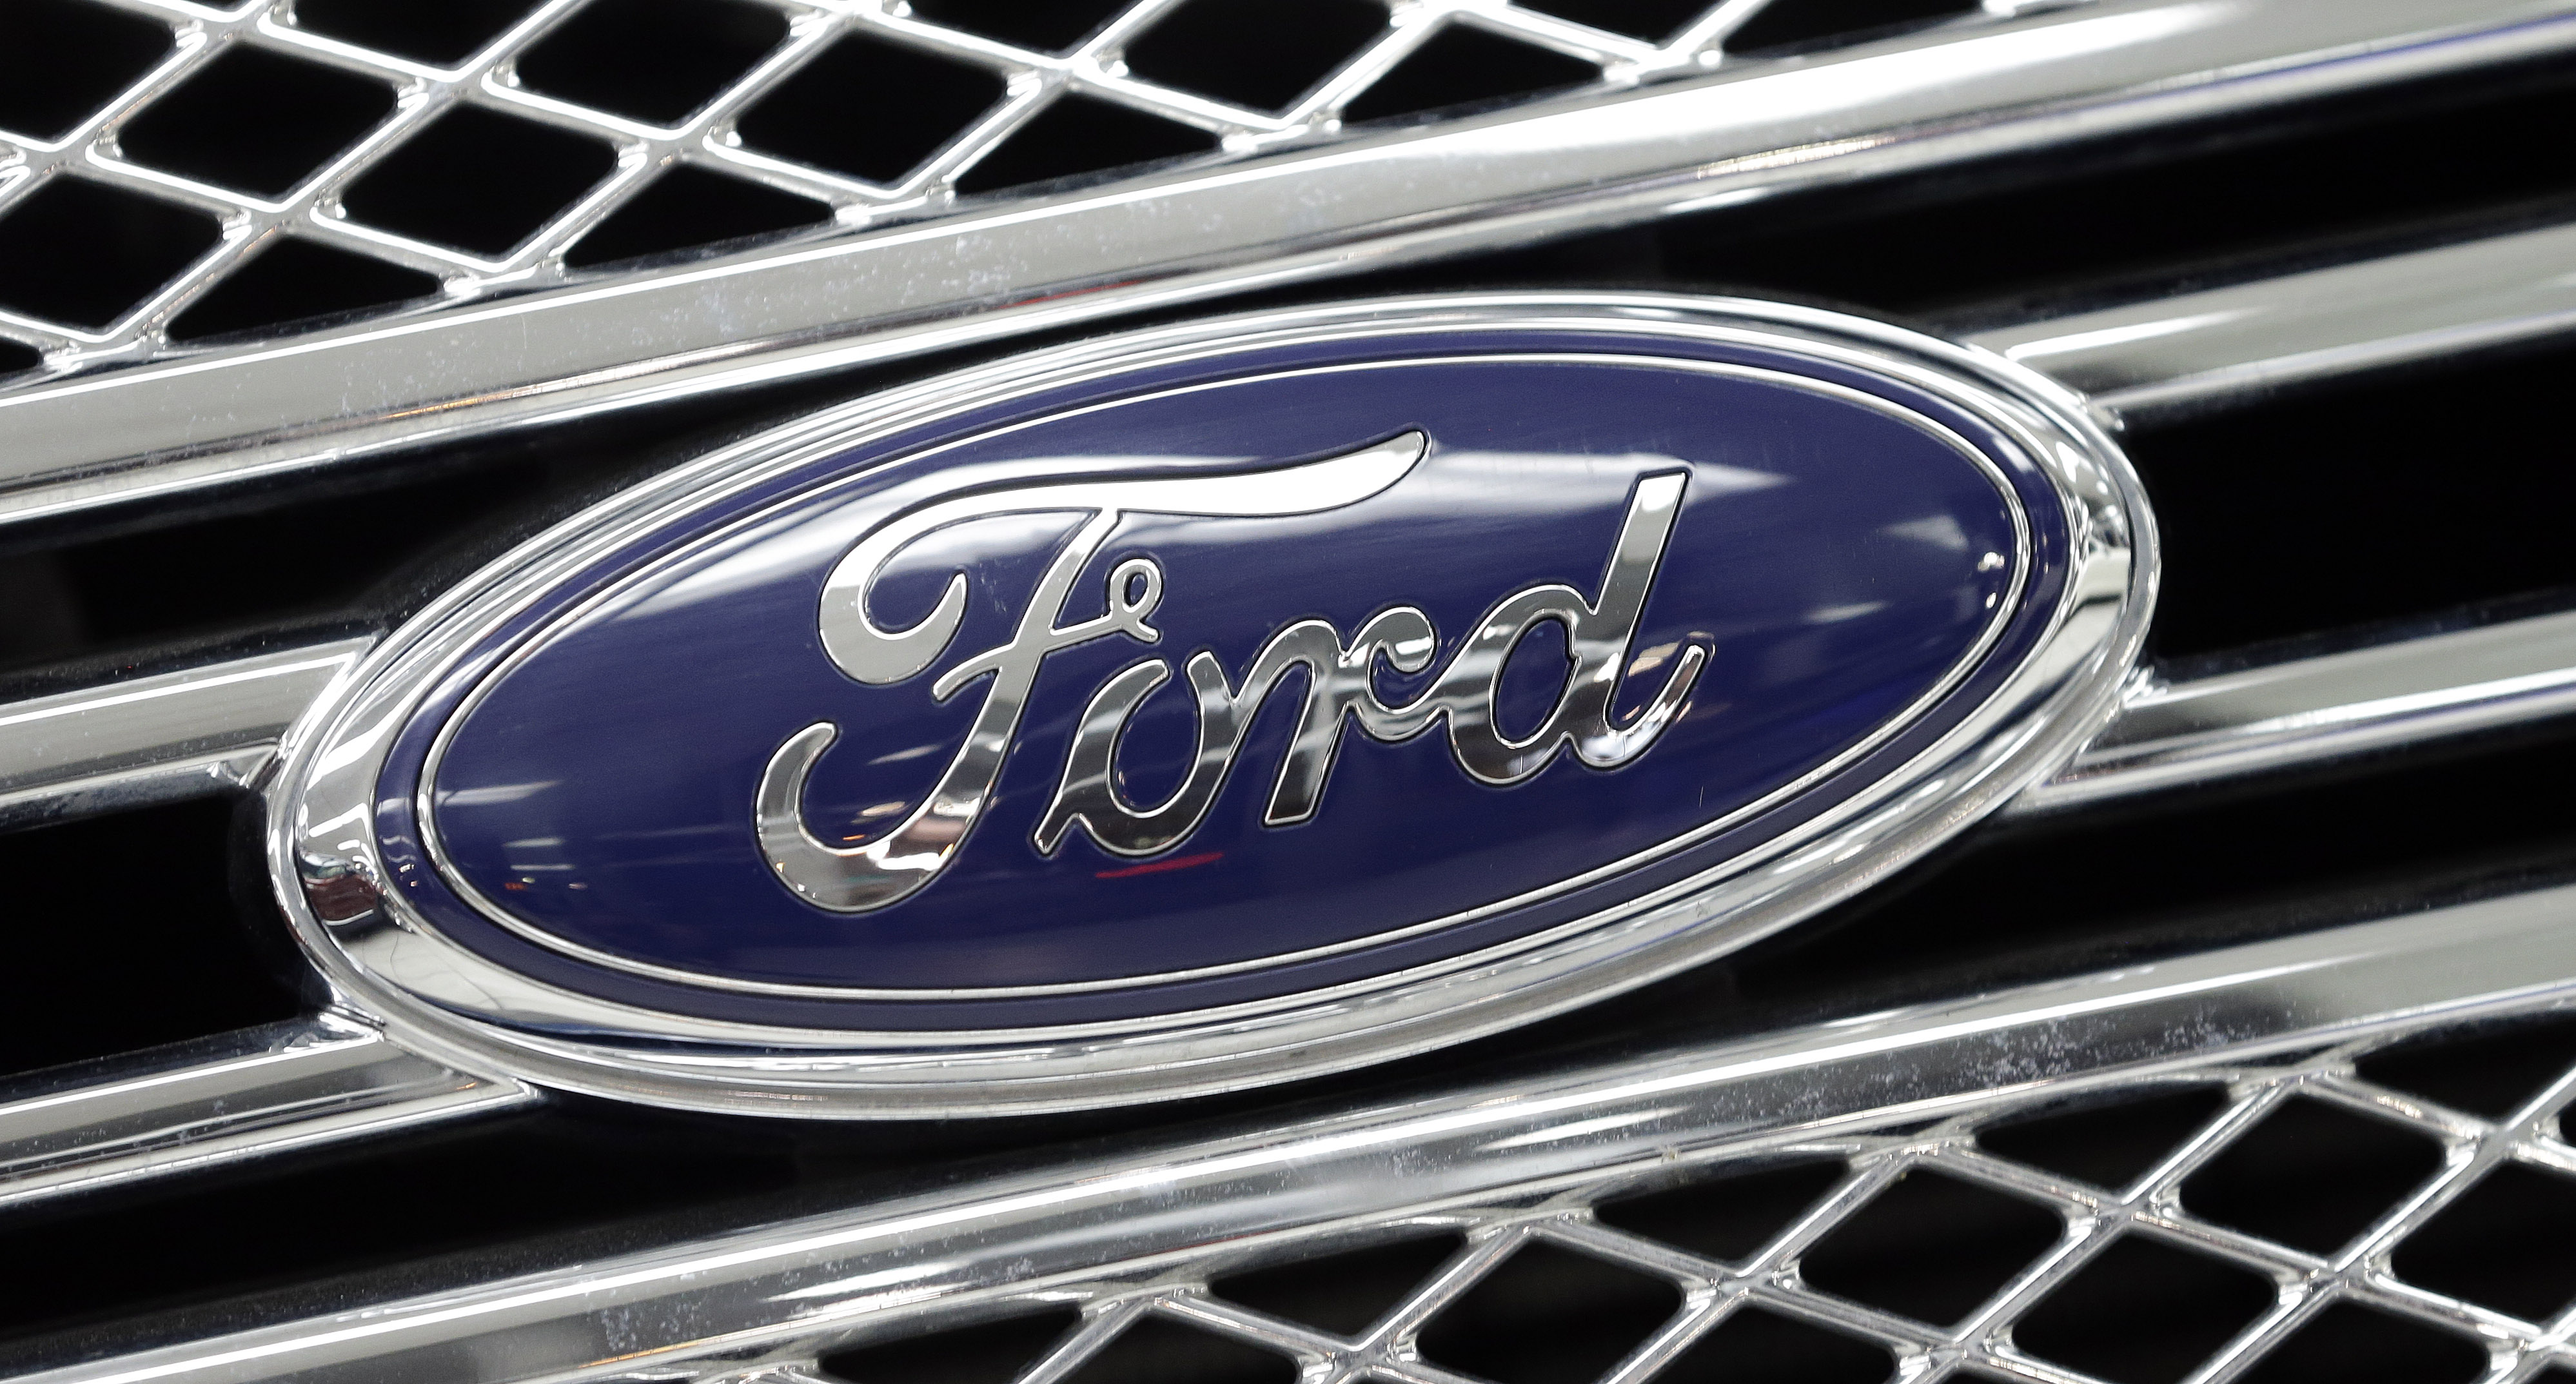 Ford: Cars could act as roving parking spot scouts